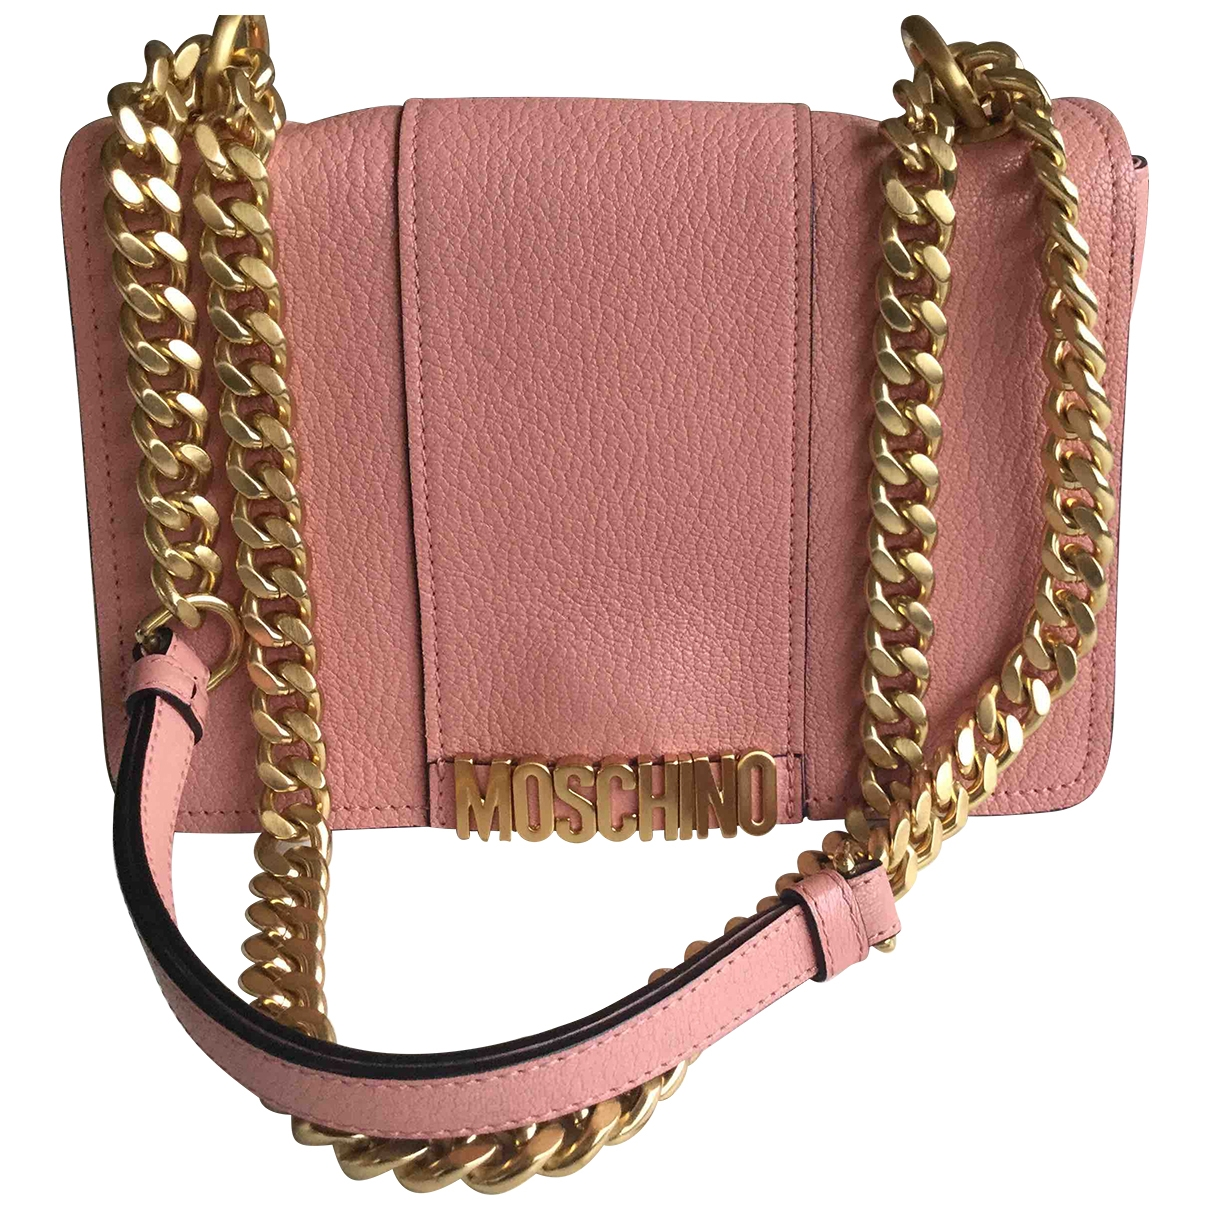 Moschino \N Pink Leather handbag for Women \N